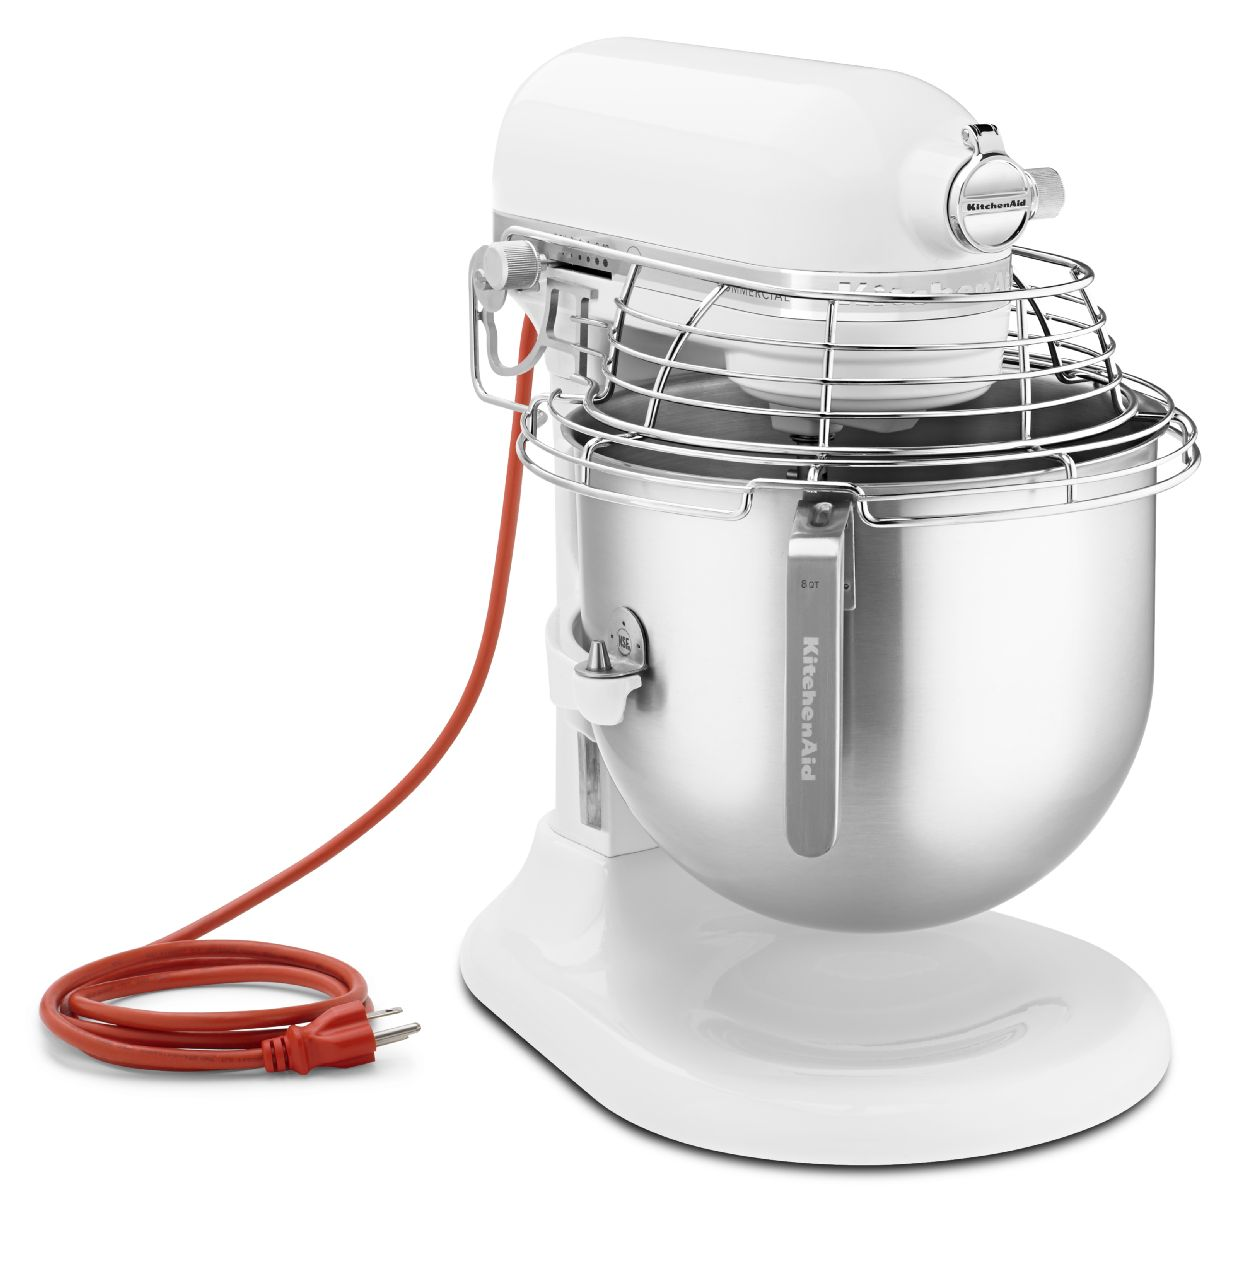 Commercial Countertop Mixer Kitchenaid Nsf Certified Commercial 8 Qt Bowl Lift Stand